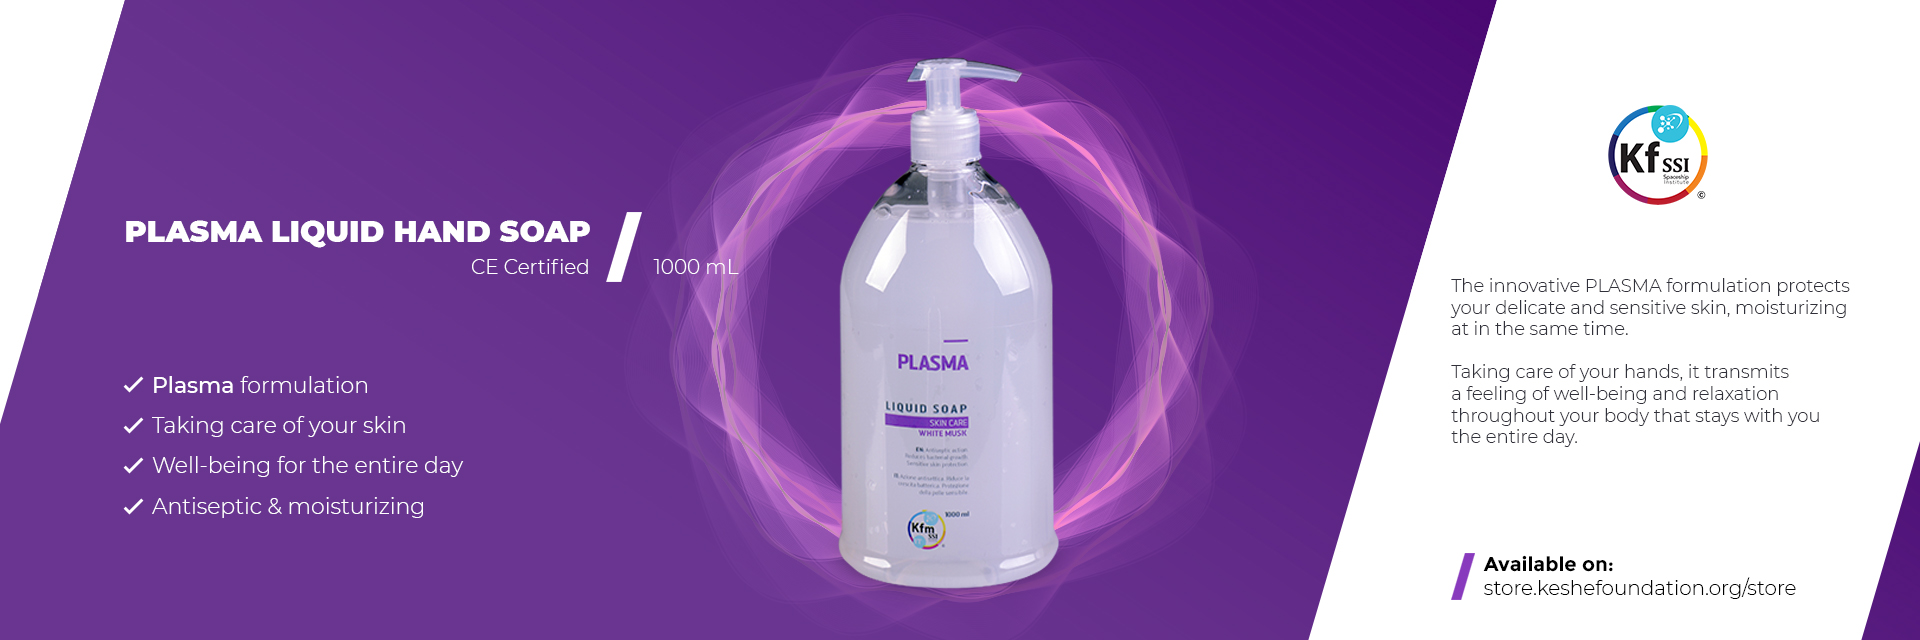 Plasma Liquid HandSoap